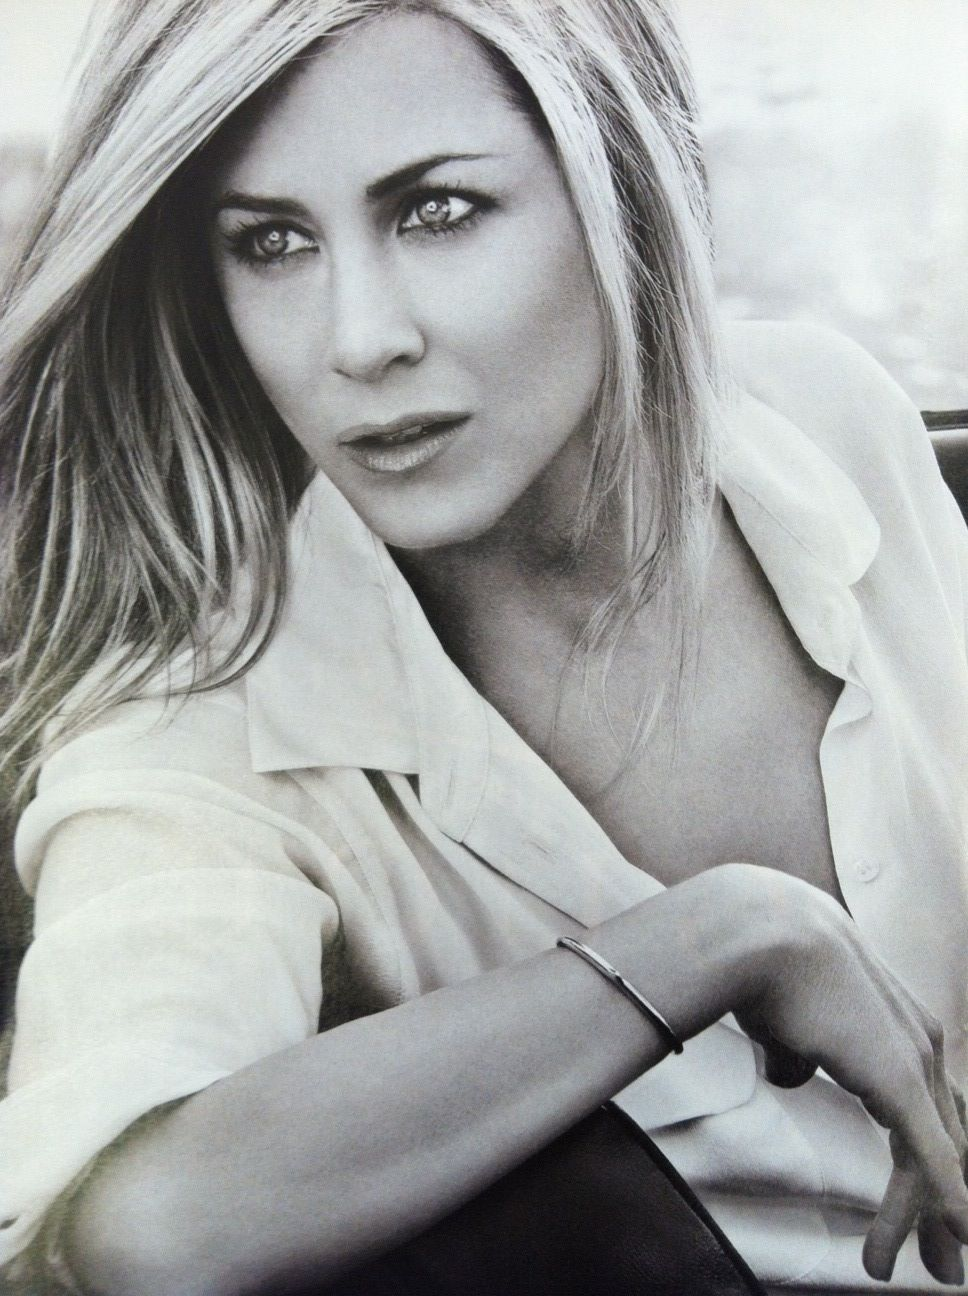 The woman who will never age and will get even more beautiful as she gets older! #JenniferAniston